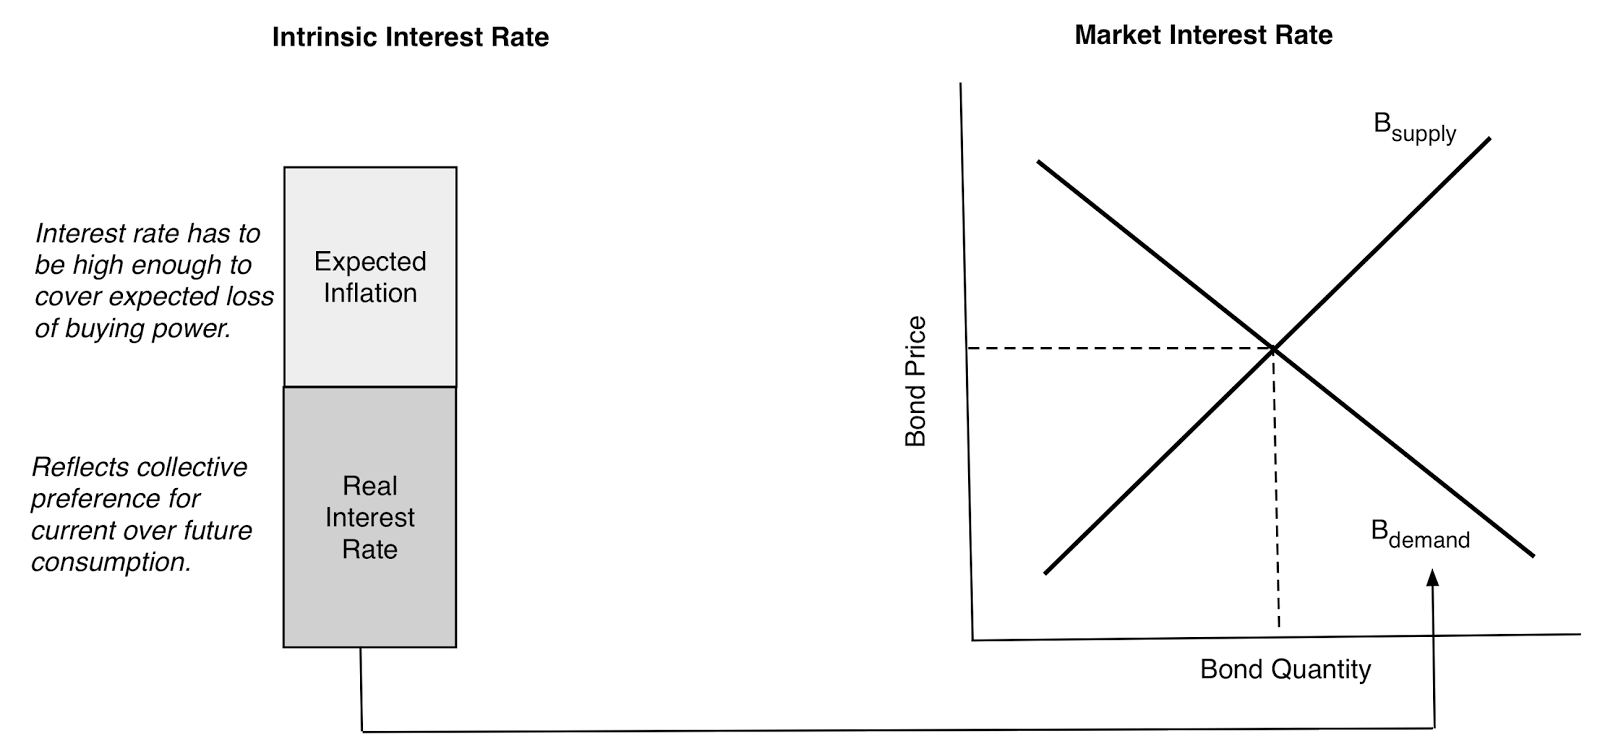 Musings on Markets: Negative Interest Rates: Impossible